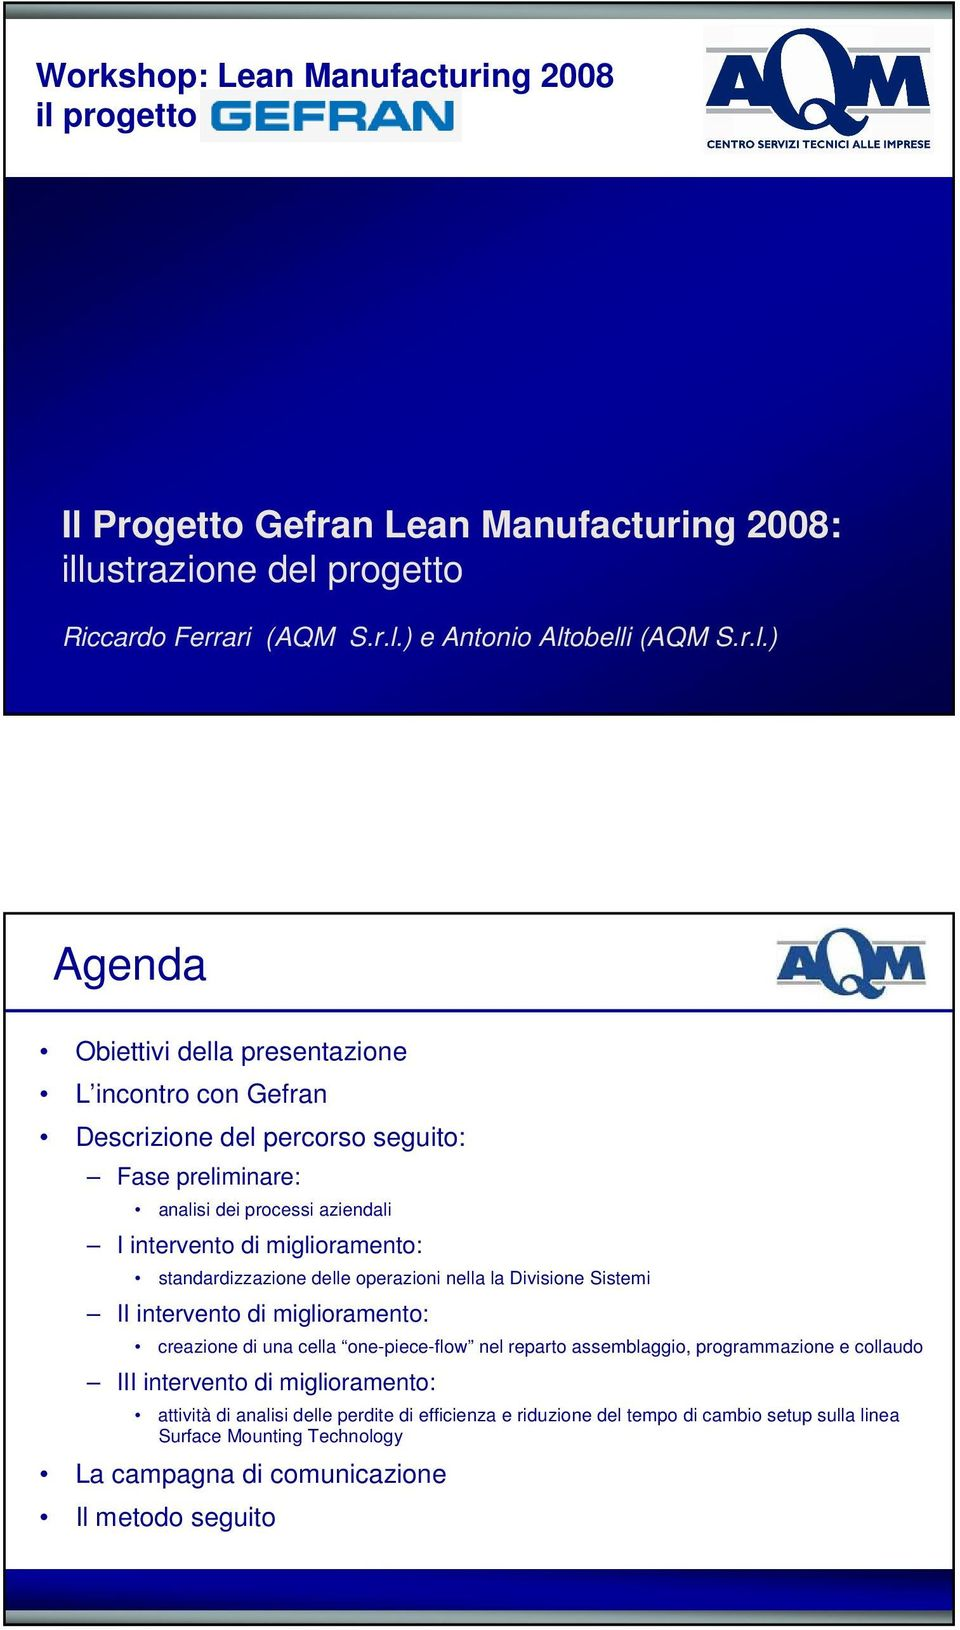 Progetto Gefran Lean Manufacturing 2008: ill